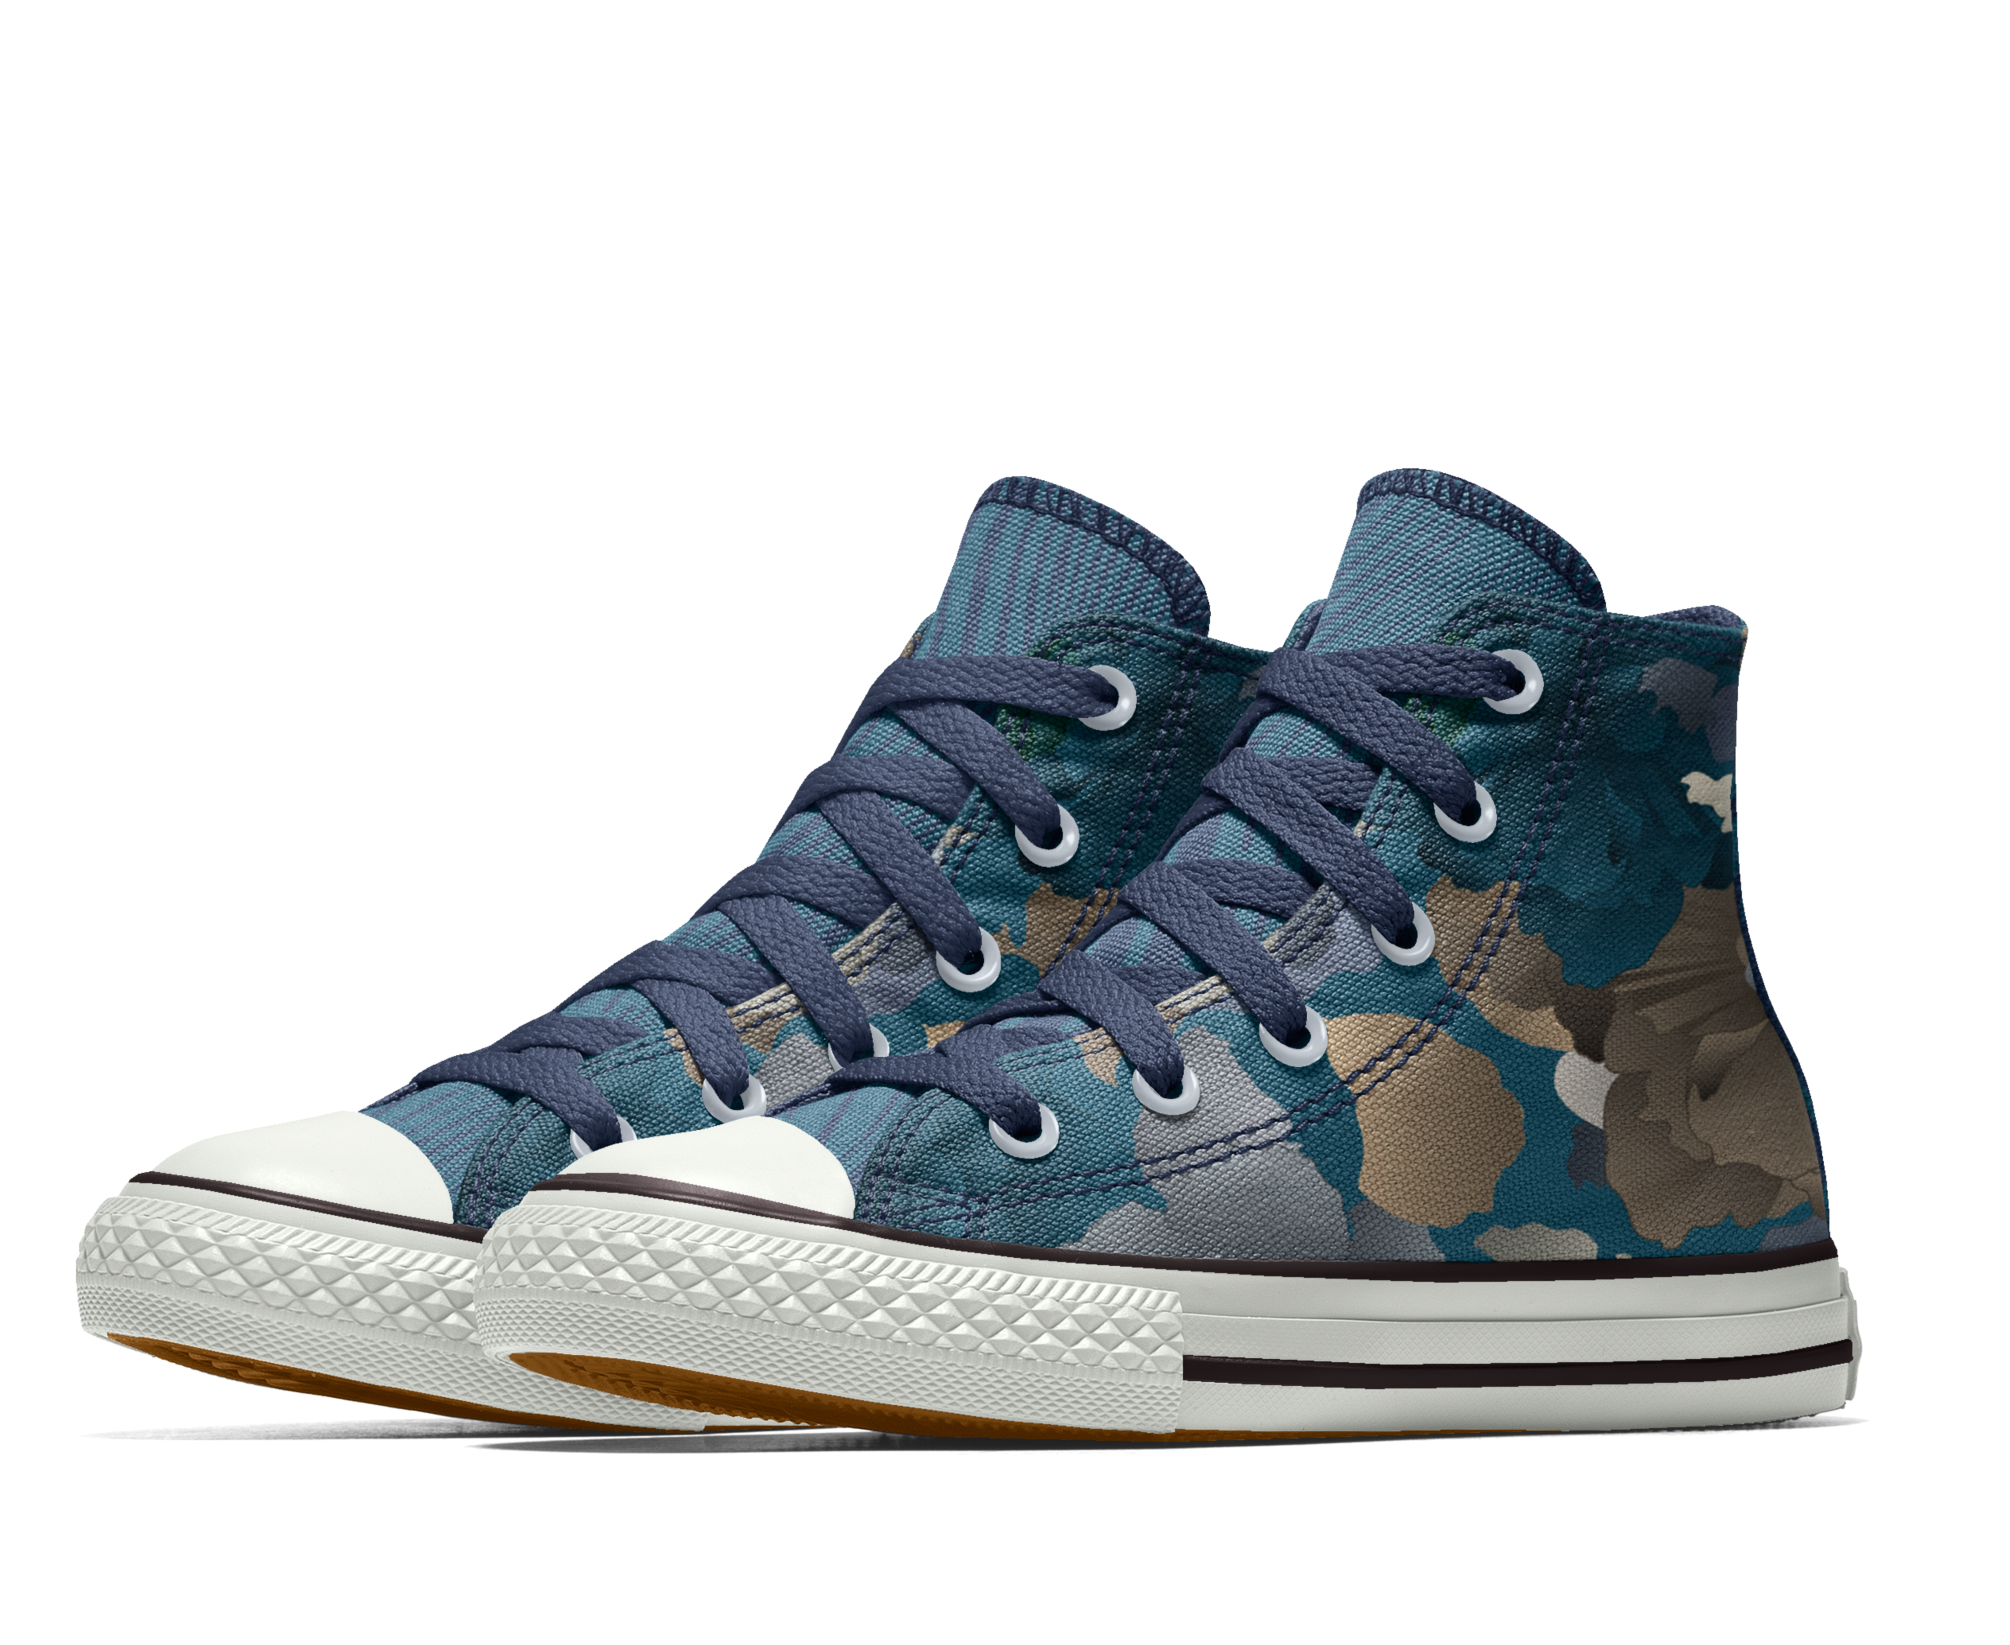 Custom Converse Chuck Taylors | The coolest tween gifts